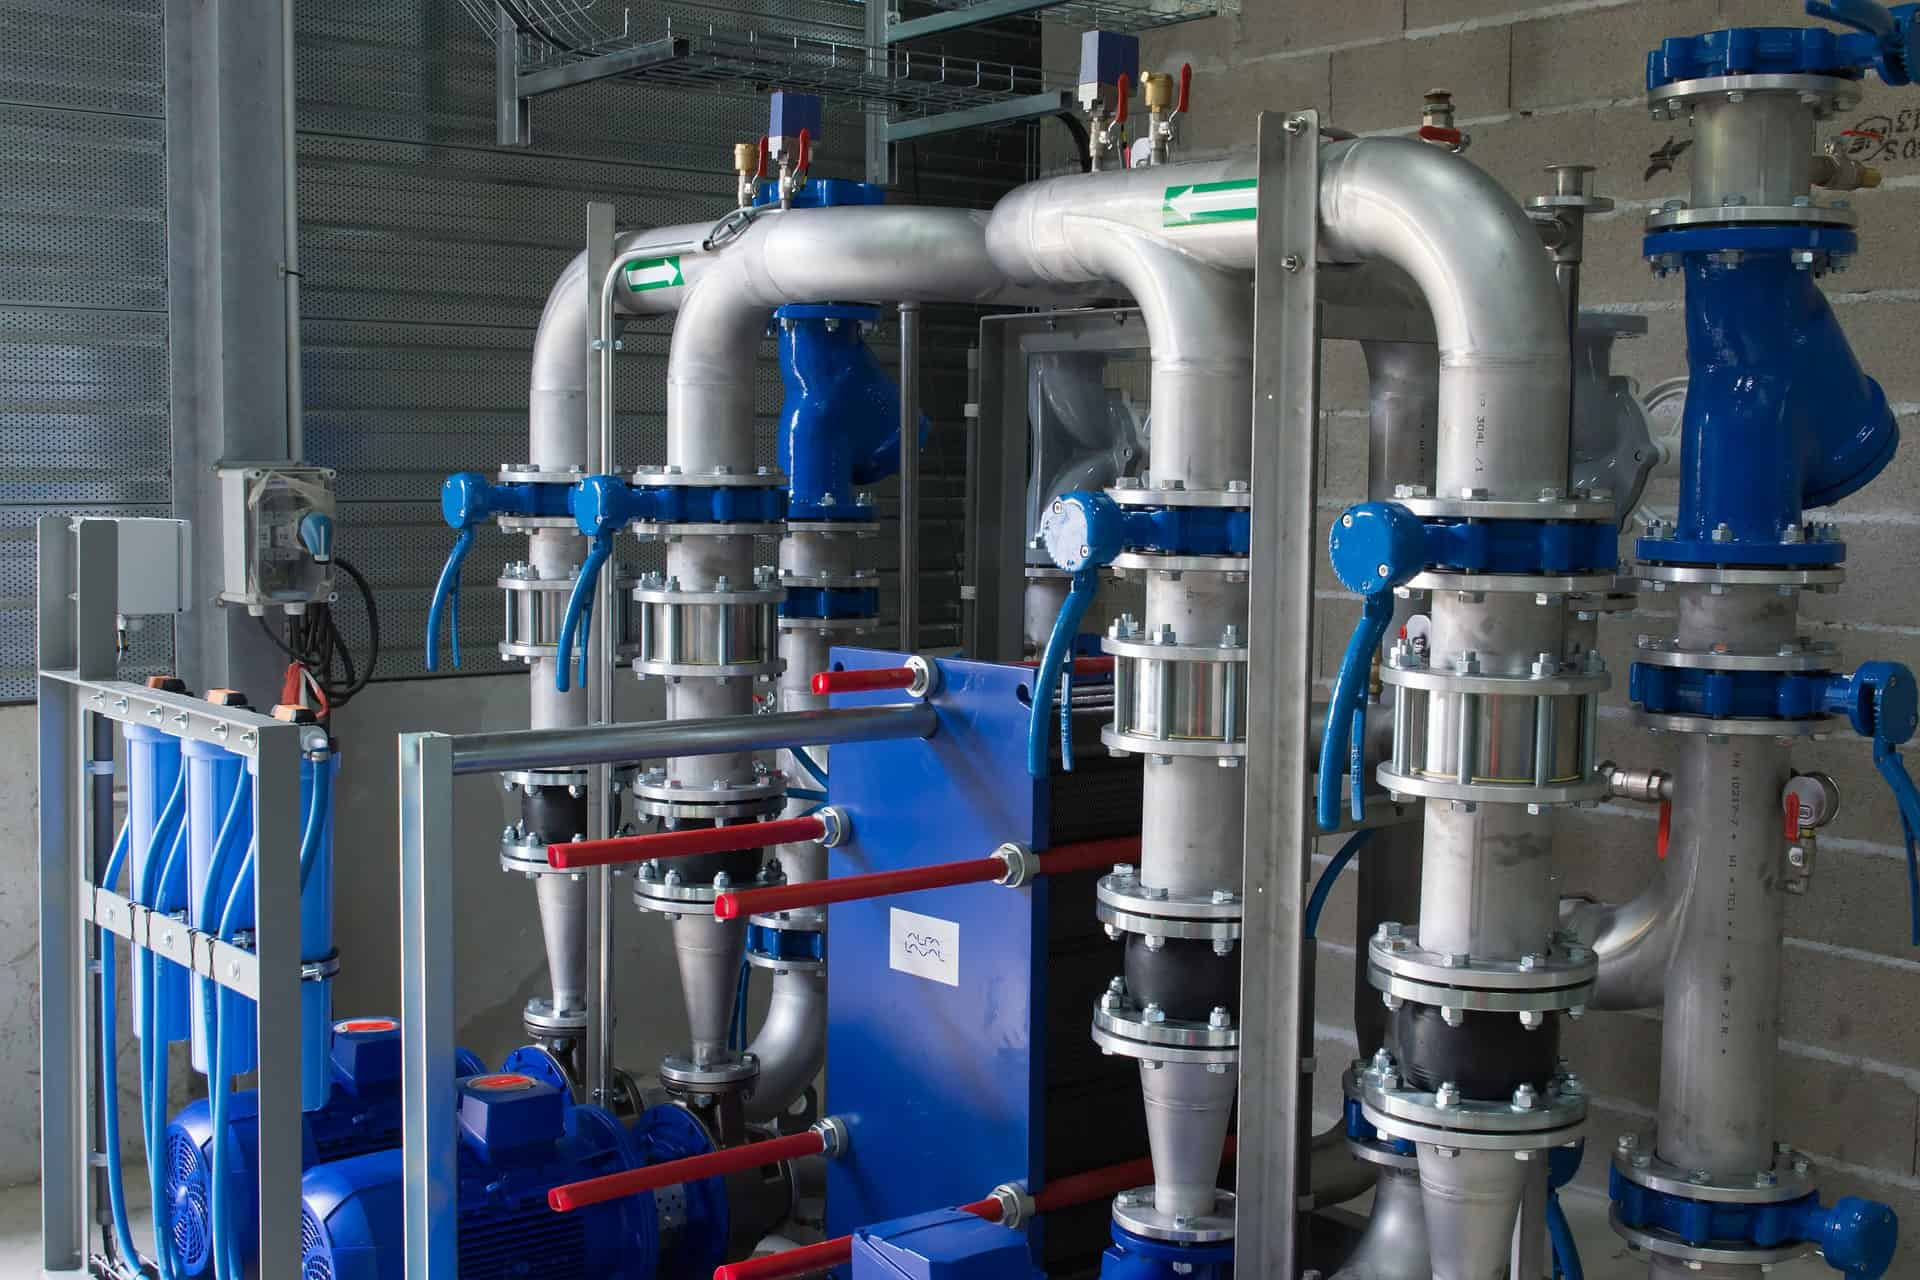 Selecting the Right Pump for Your Application